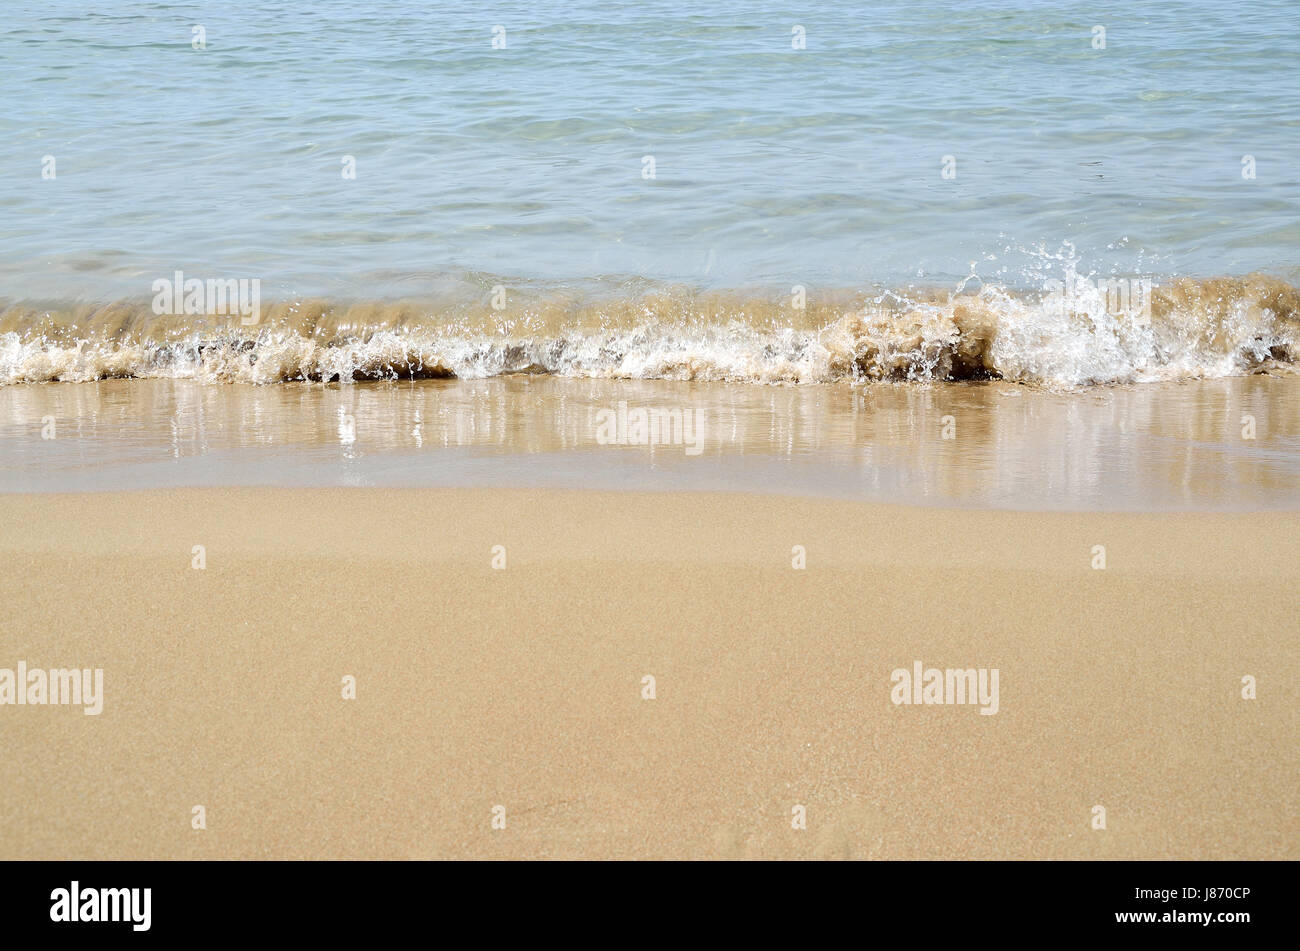 Waves of sea in a beach with fine sand - Stock Image